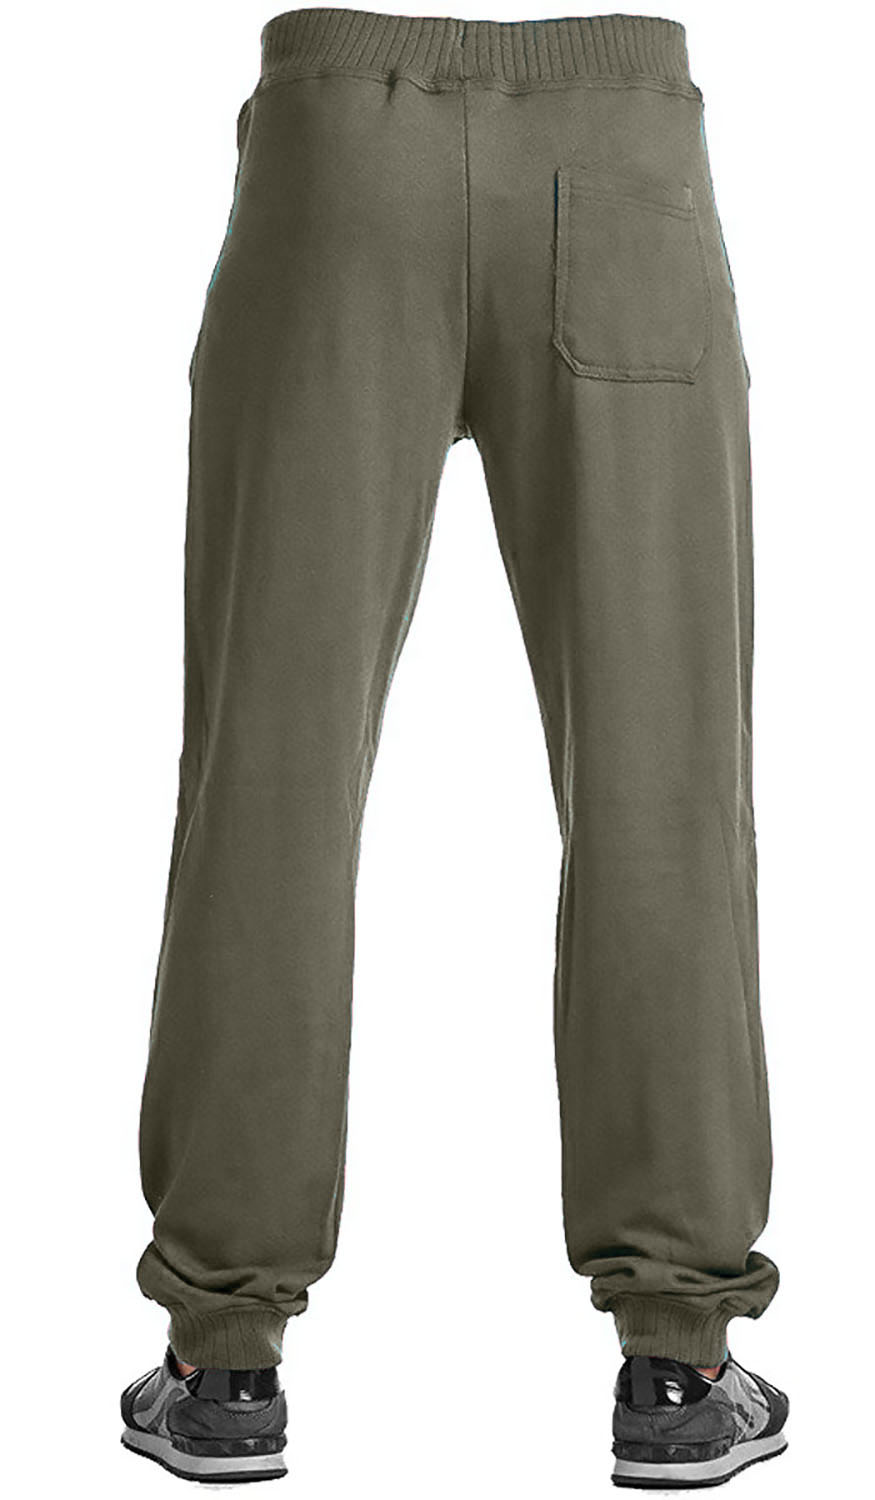 Adaptive style pants with two full length side zippers. Opens amply on both sides to assist in dressing/undressing and personal care. Zipper separates completely at ankles (like a jacket zipper).5/5.